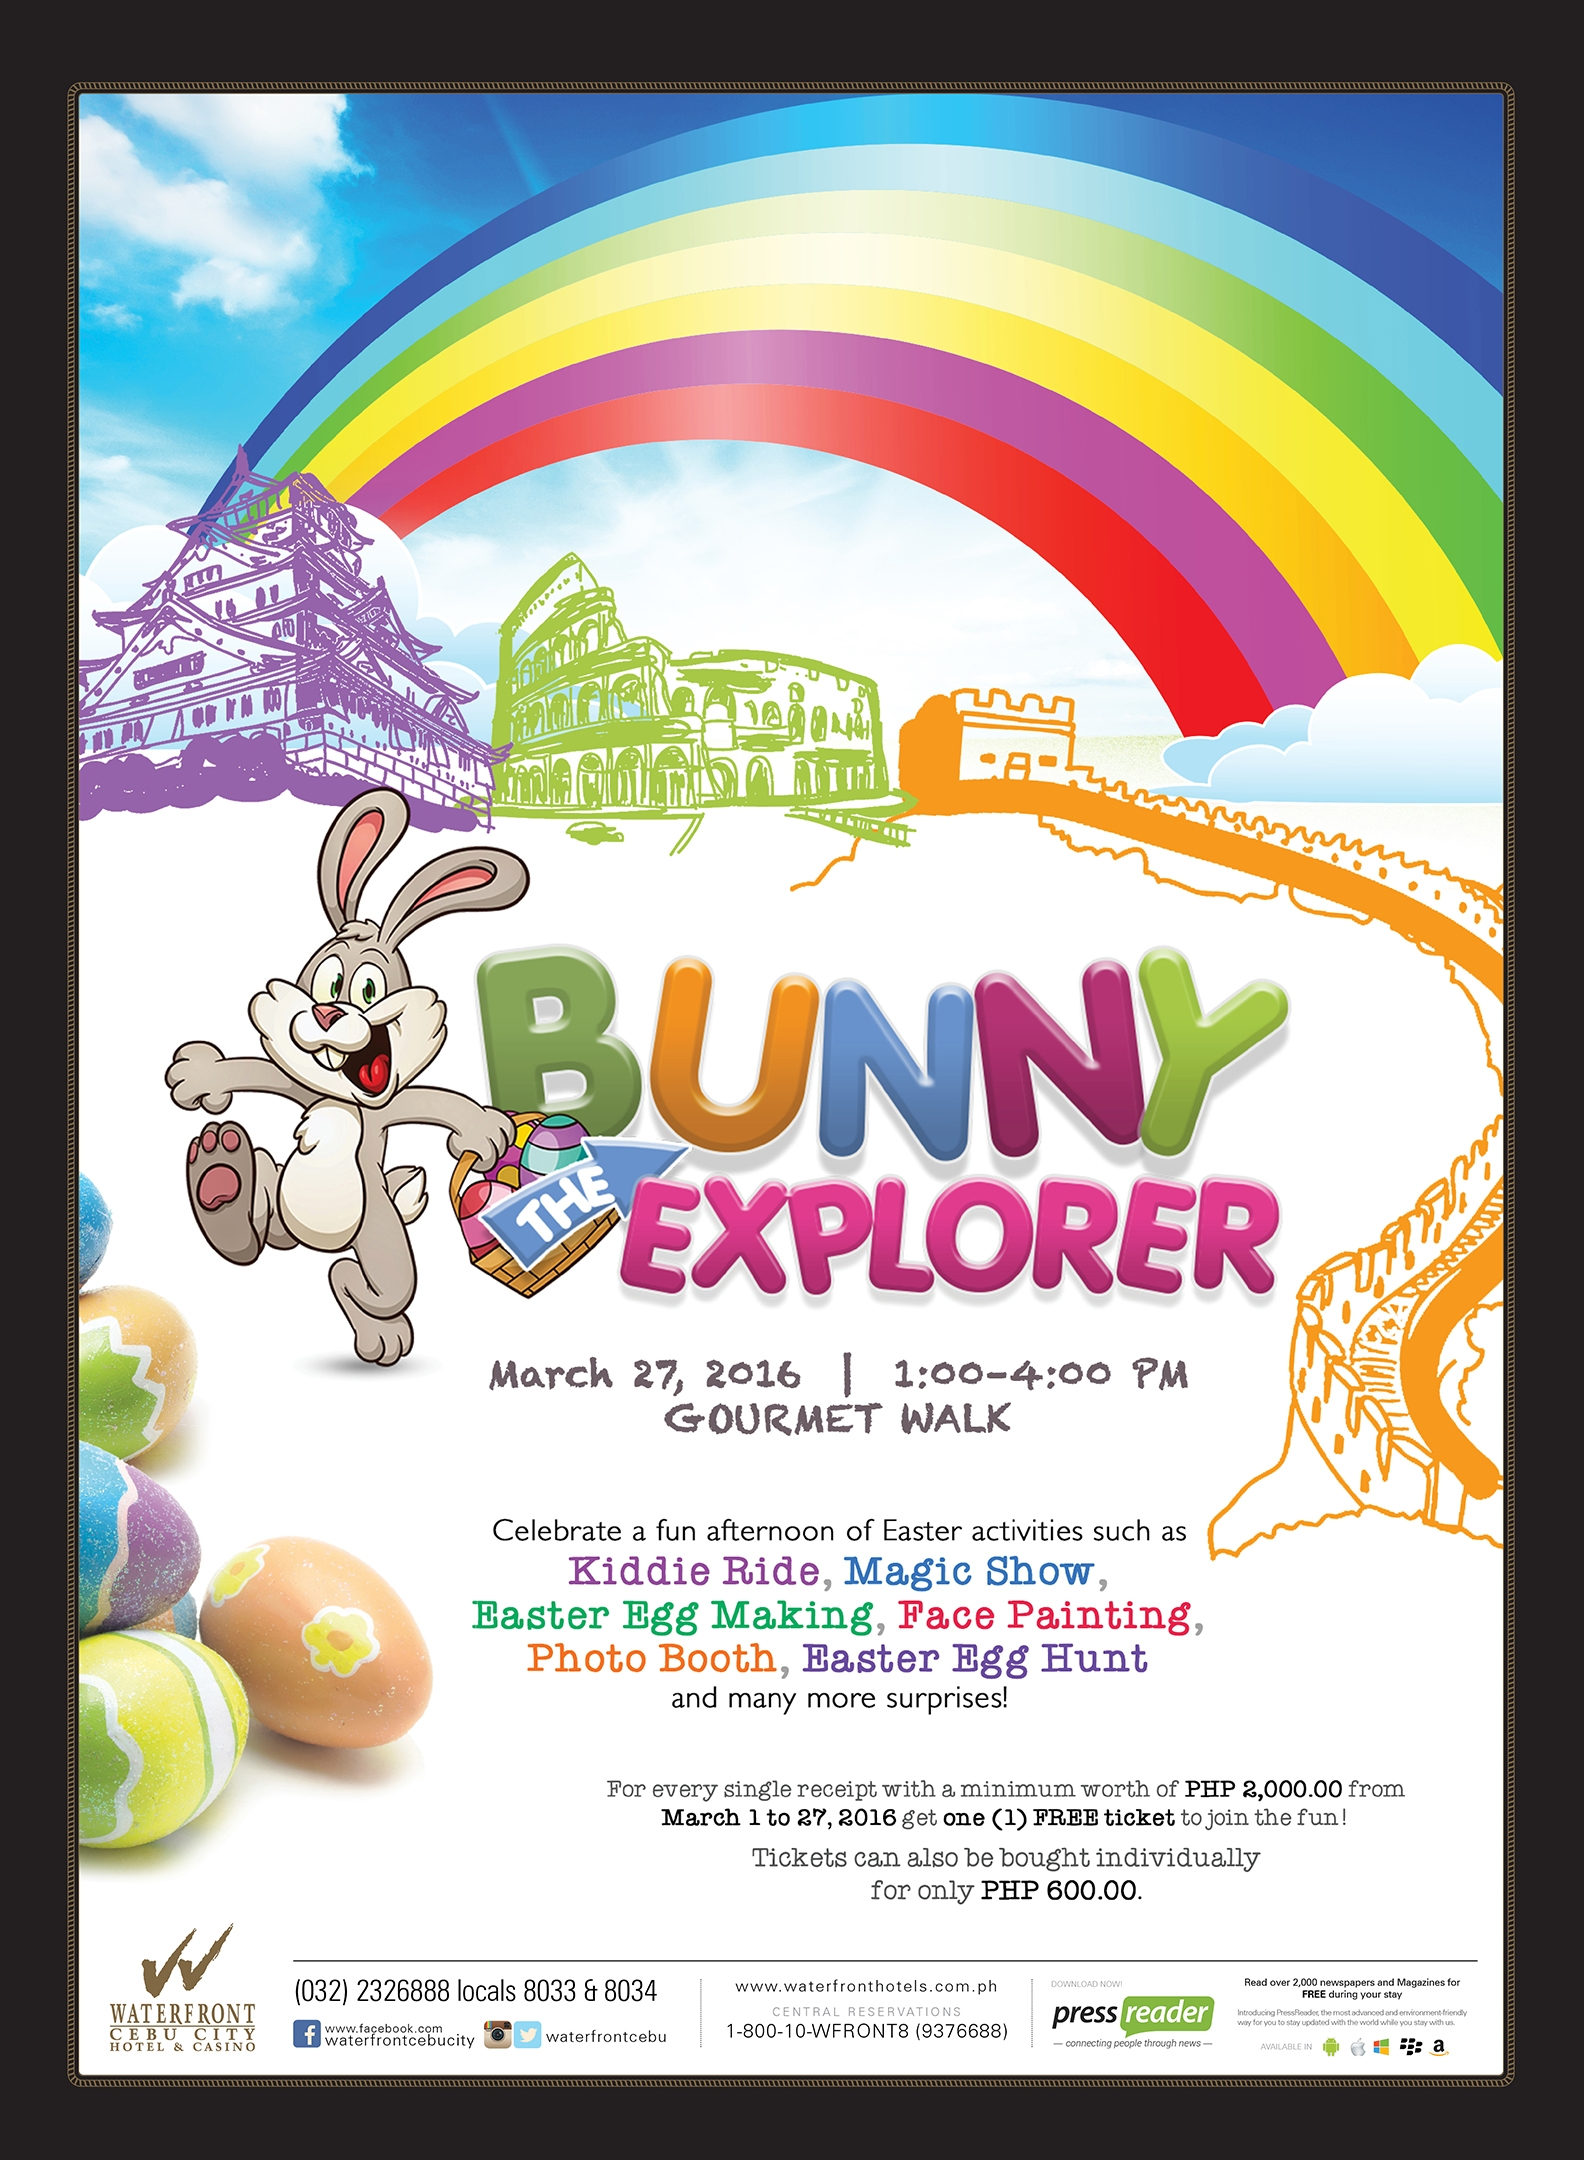 Easter Egg Hunt at Waterfront Cebu City Hotel and Casino